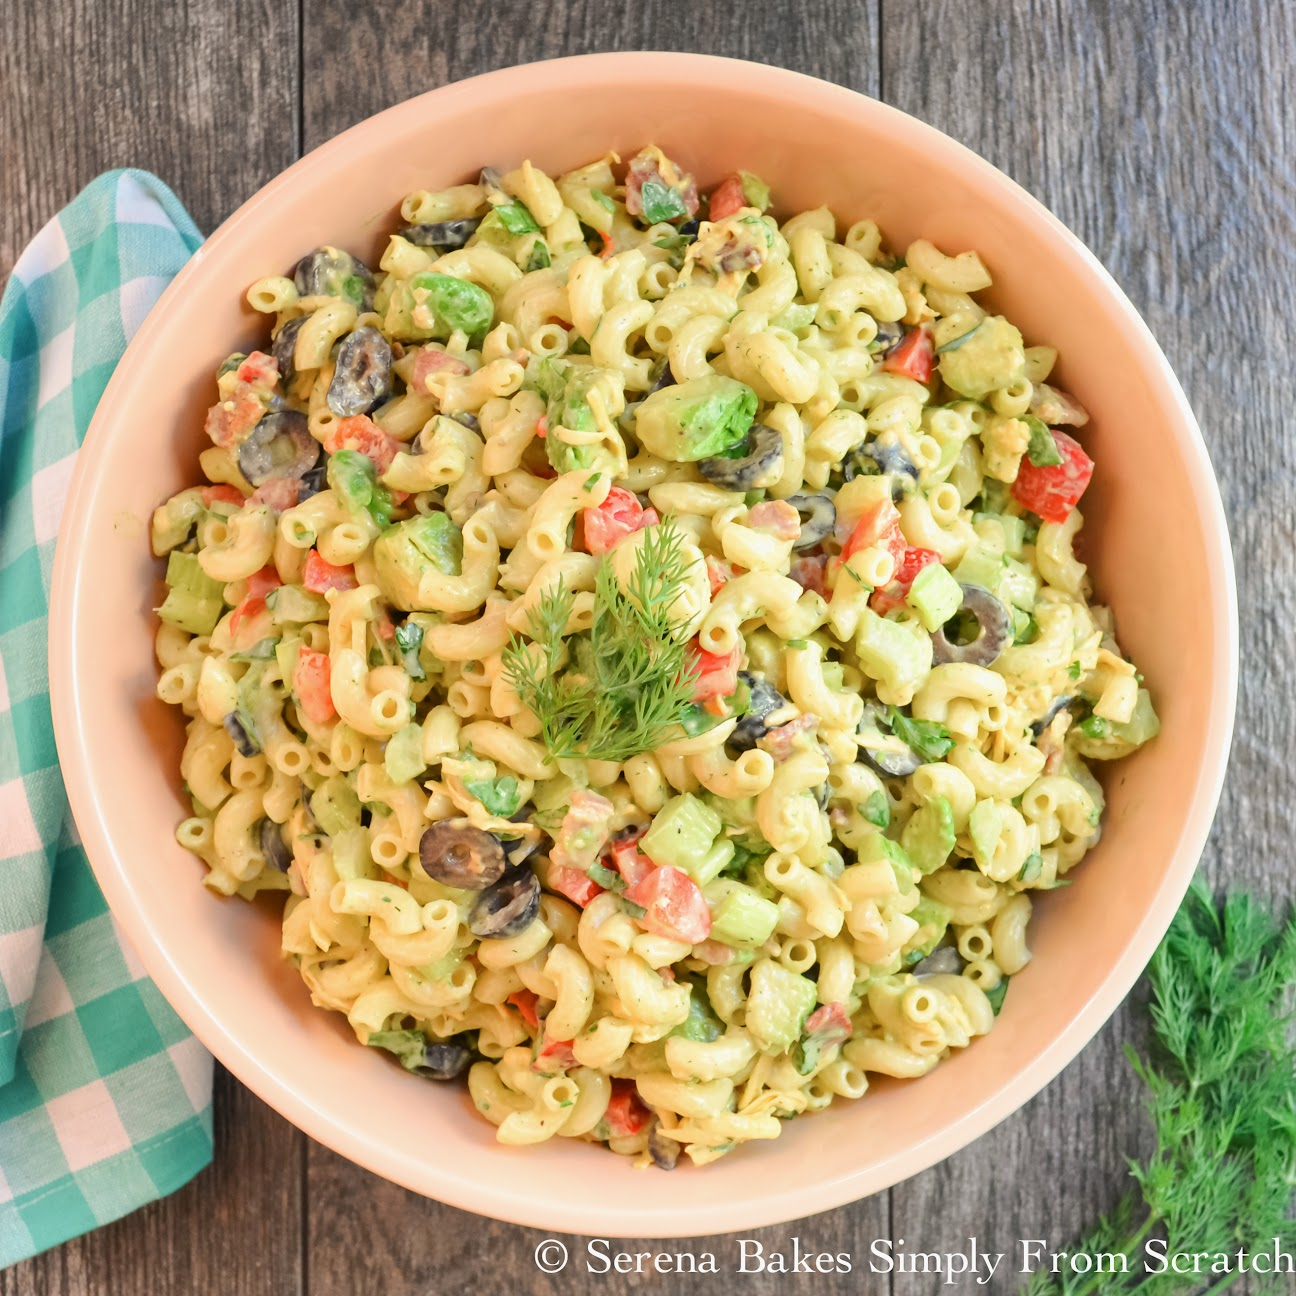 Creamy Avocado Bacon Pasta Salad with Dill Dressing. So good and easy to make.